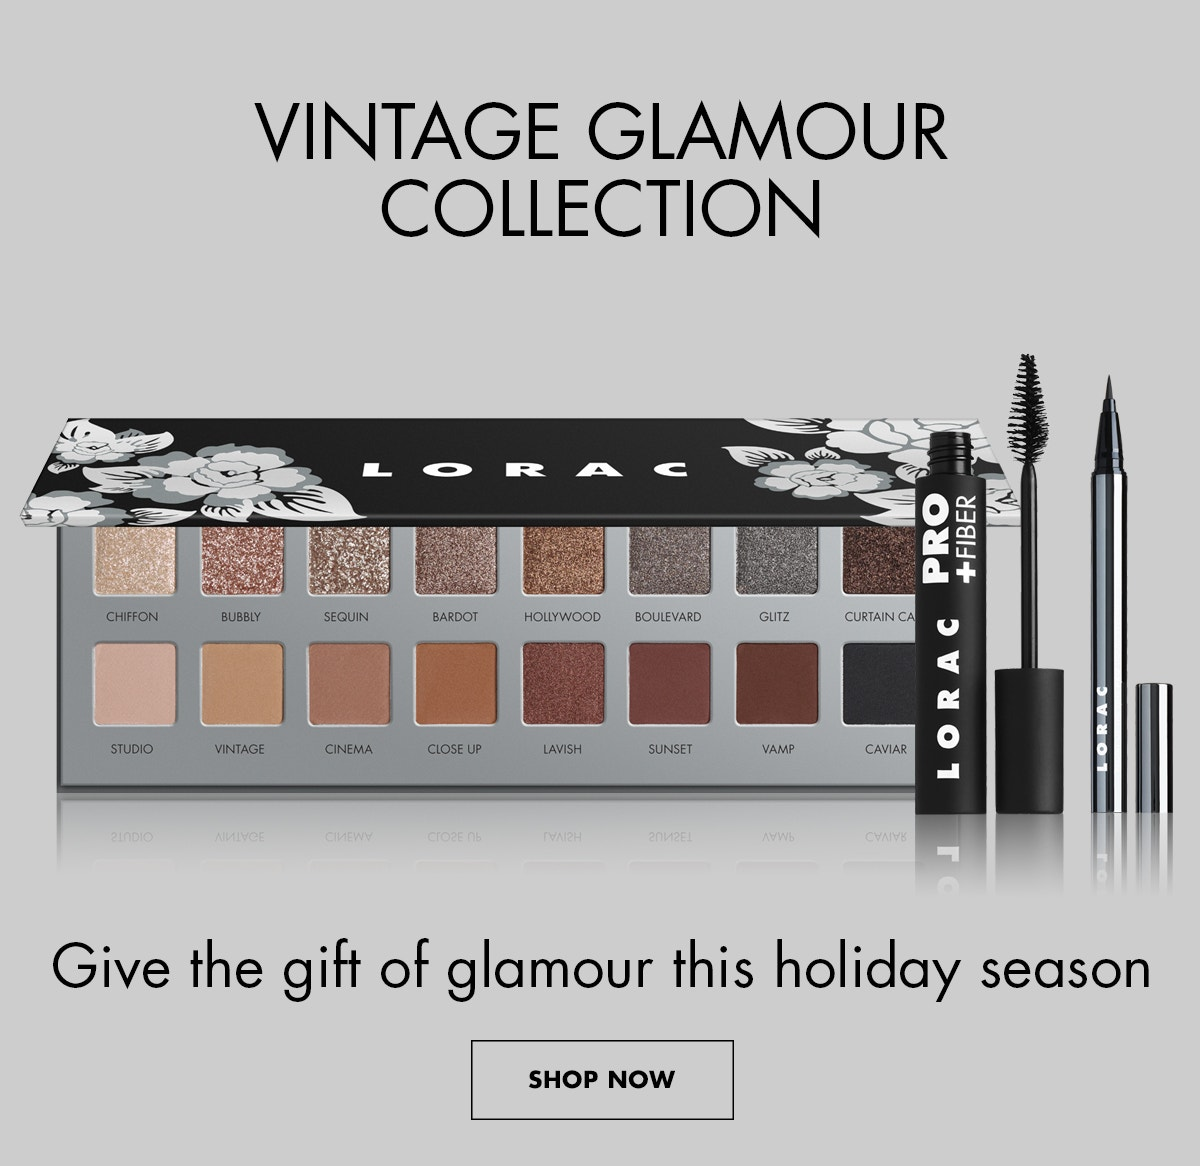 LORAC | Vintage Glamour Collection | Give The Gift of Glamour This Season | SHOP NOW